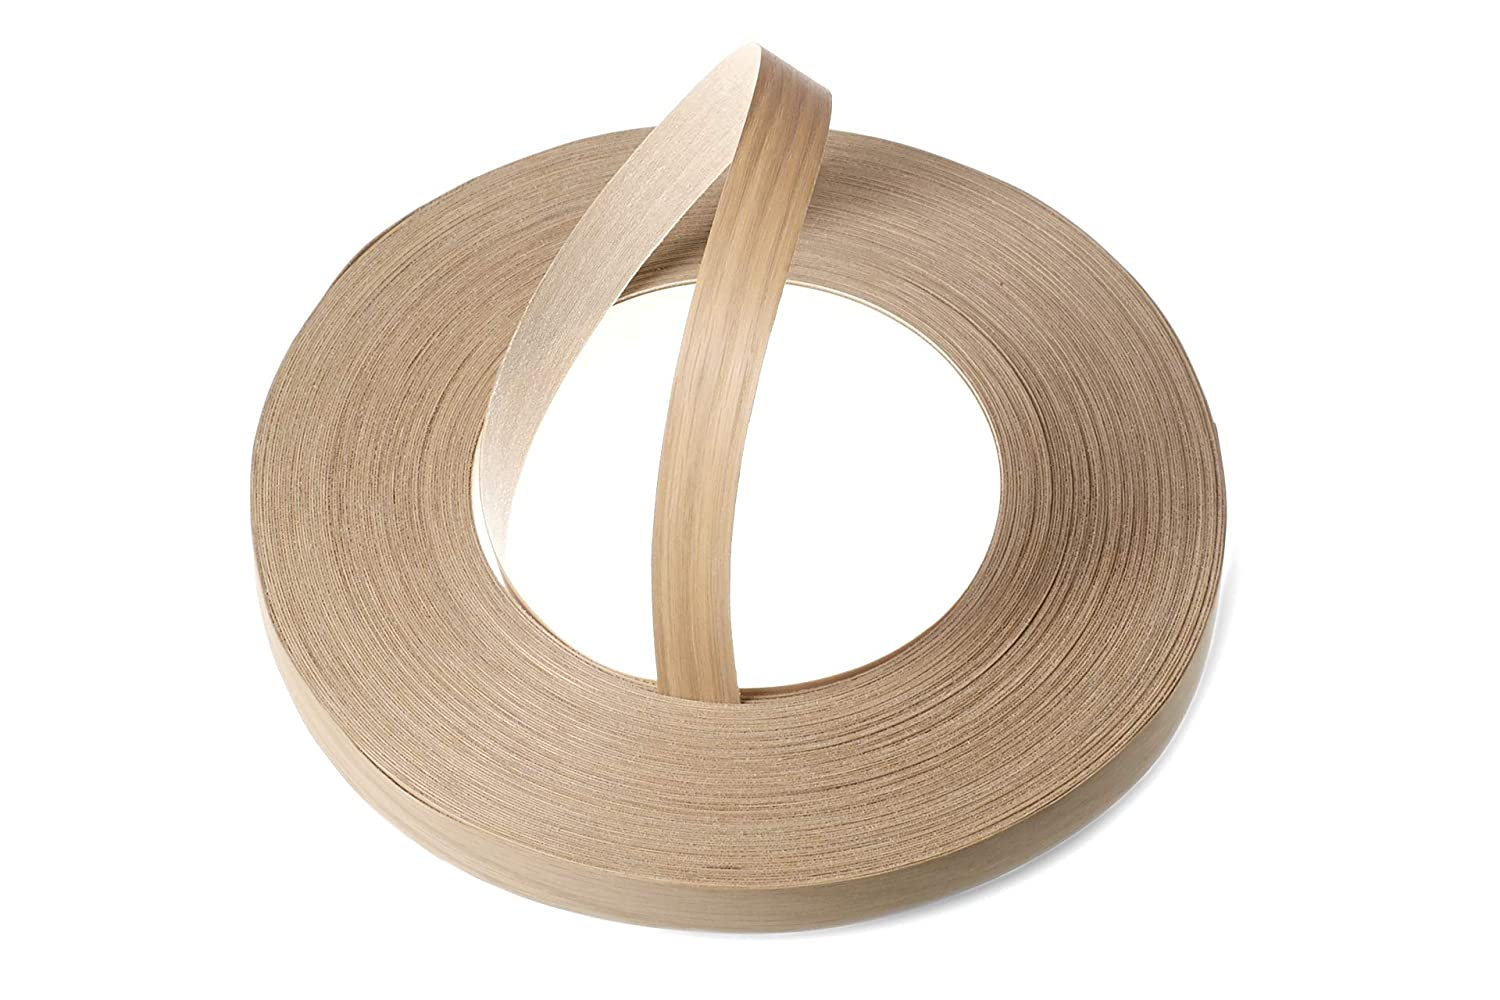 Oak Wood Veneer Edging / Veneer Edge Banding Tape (22mm width x 50m length) - Superior Grade Pre-Glued DIY Iron-On (Hotmelt) Fleeced & Sanded Veneer Edging Rolls WoodPress